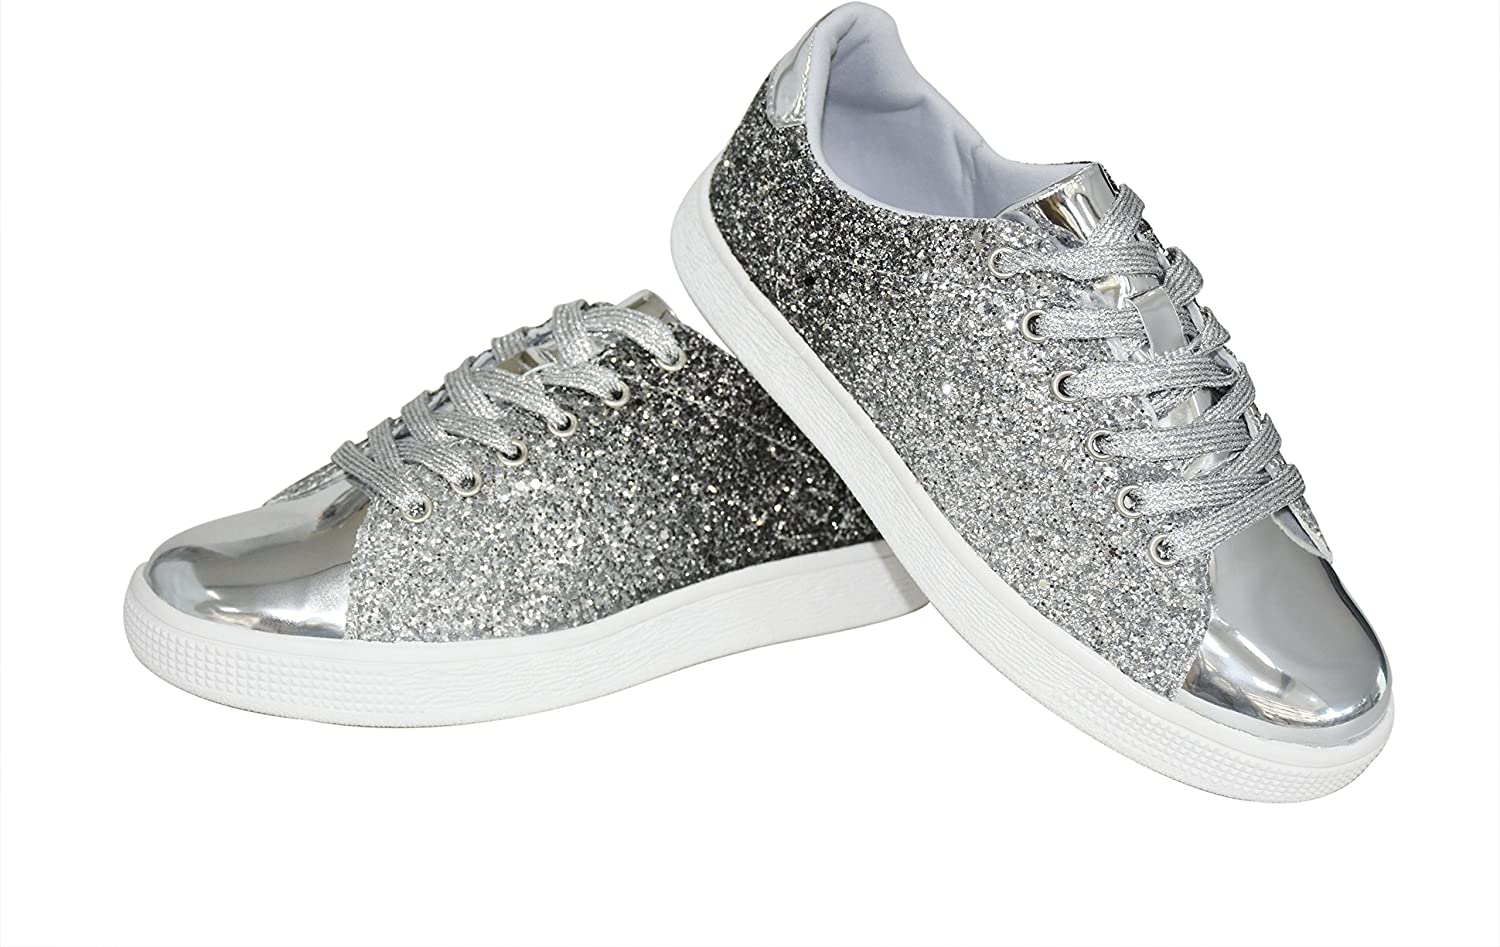 Fashion Sneakers Sparkly Shoes for